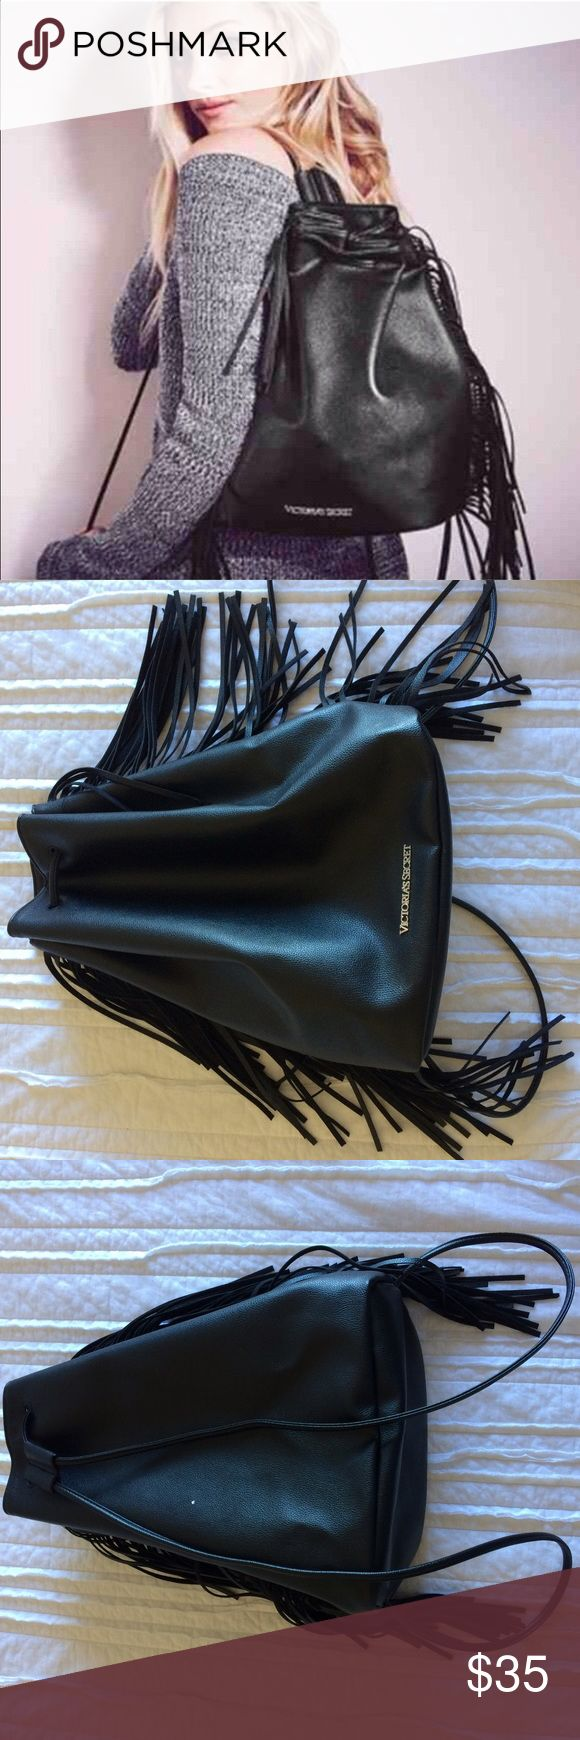 Victoria's Secret 2015 Fashion Show Backpack Faux leather with black fringe. Gently used. Has small nail polish spot on back of bag, but otherwise in good condition. (Cover photo from Victoria's Secret website) Victoria's Secret Bags Backpacks